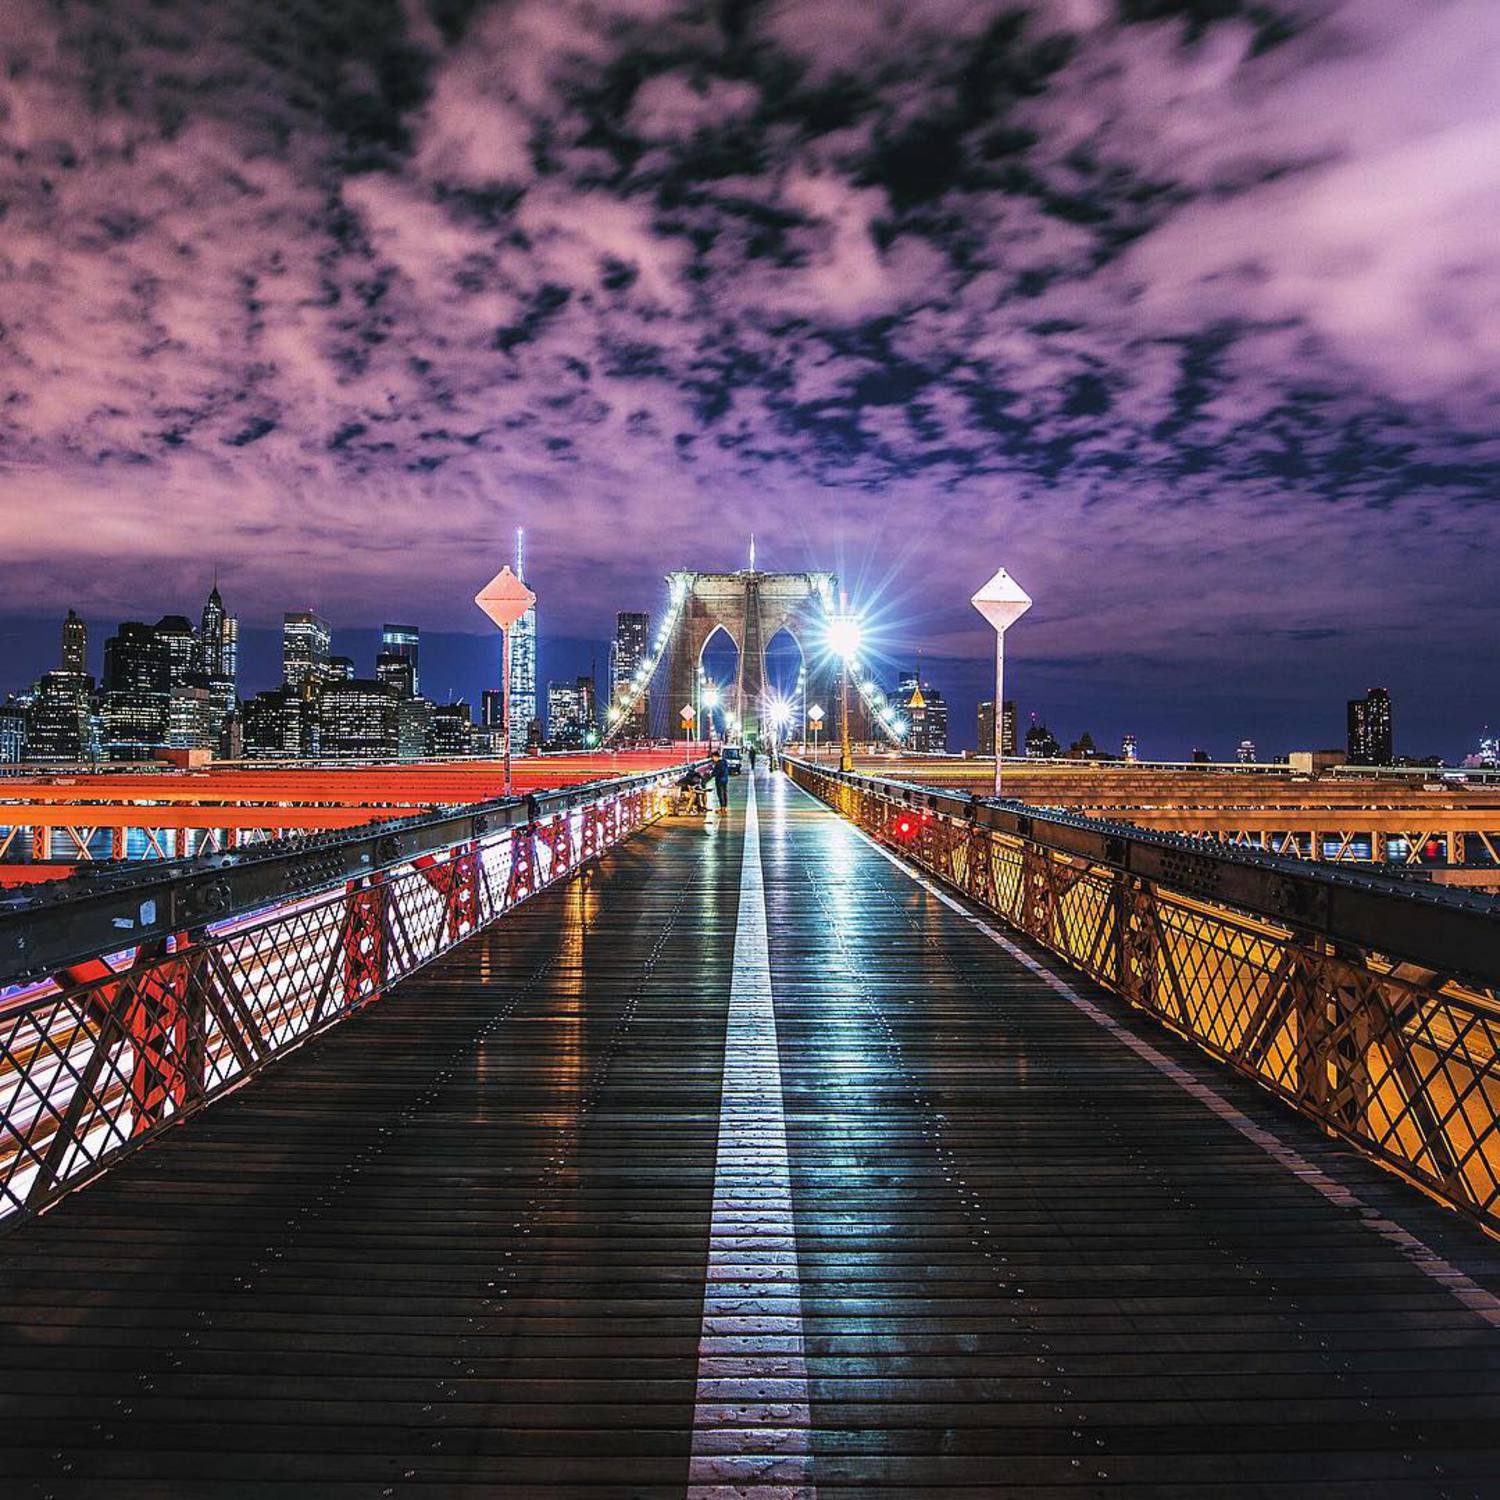 • Symmetry •  Here's a shot of the magnificent Brooklyn Bridge a few nights ago with the editing inspired by @asteryx and @jude_allen! The clouds were perfect and super clean symmetry made this a favourite of mine!  5D MK3 w/ 16-35mm f/4 |  4"